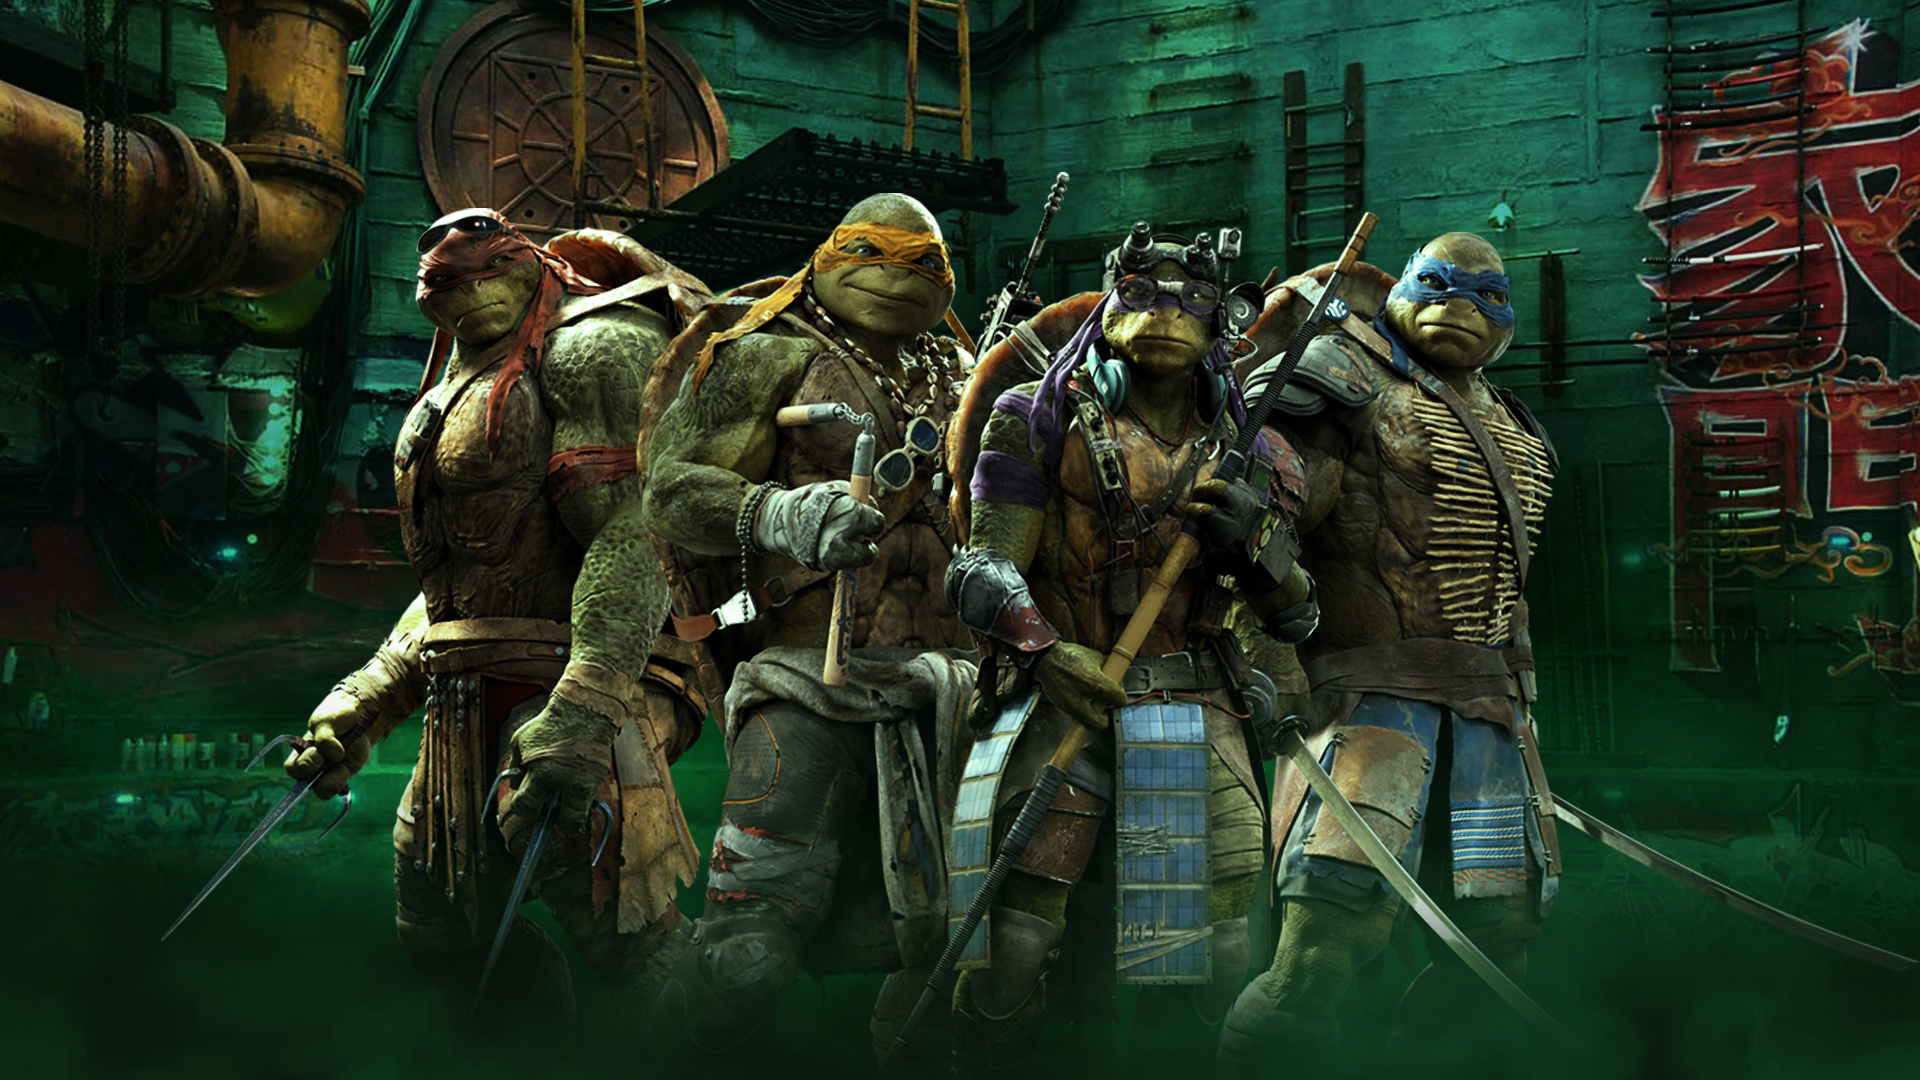 Teenage Mutant Ninja Turtles Wallpaper Hd